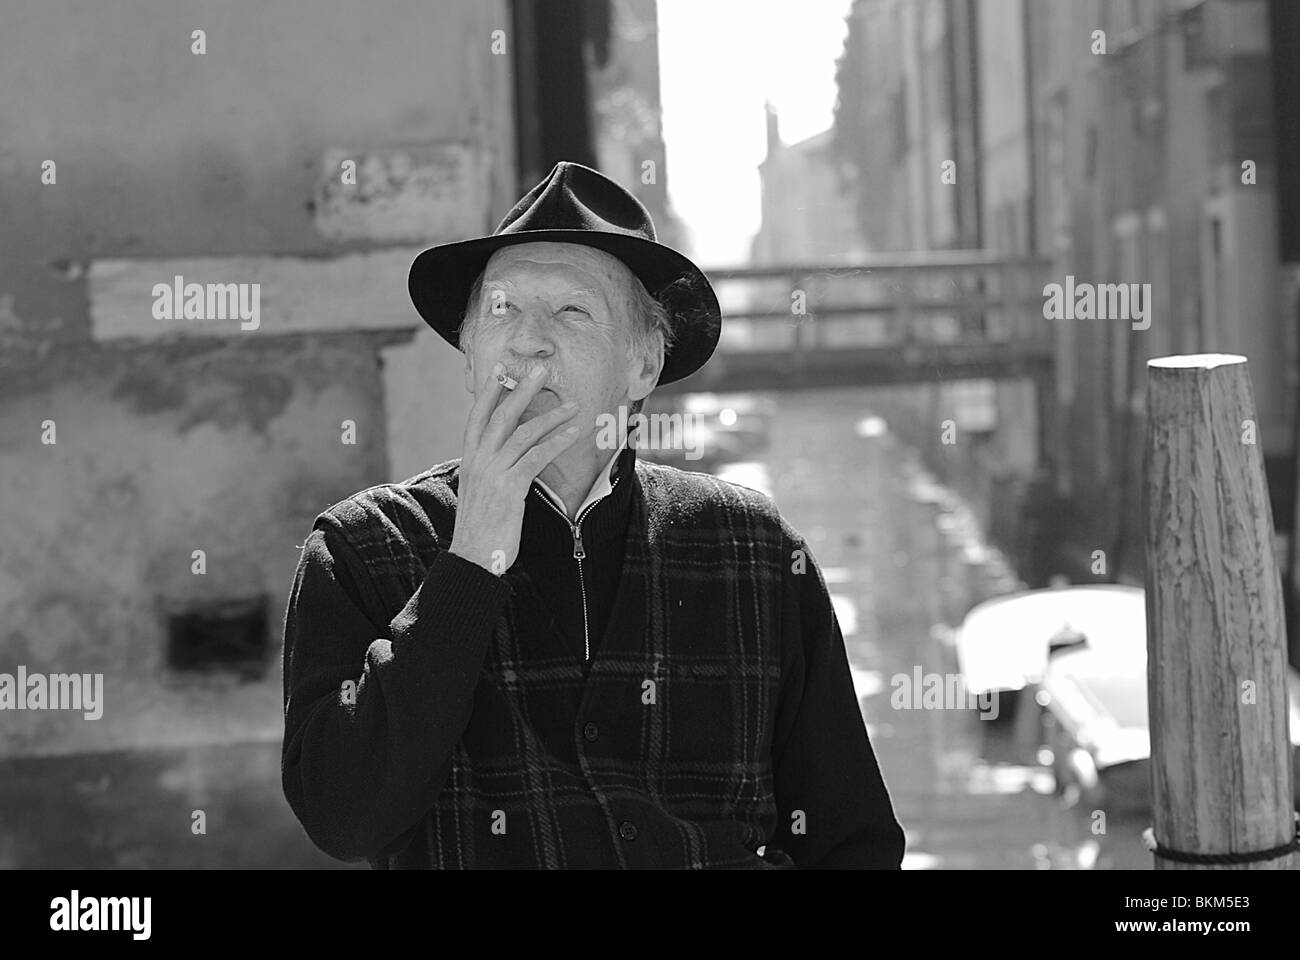 Black and white portrait of an elederly Italian man smoking a cigarette on a bridge in Venice, Italy - Stock Image